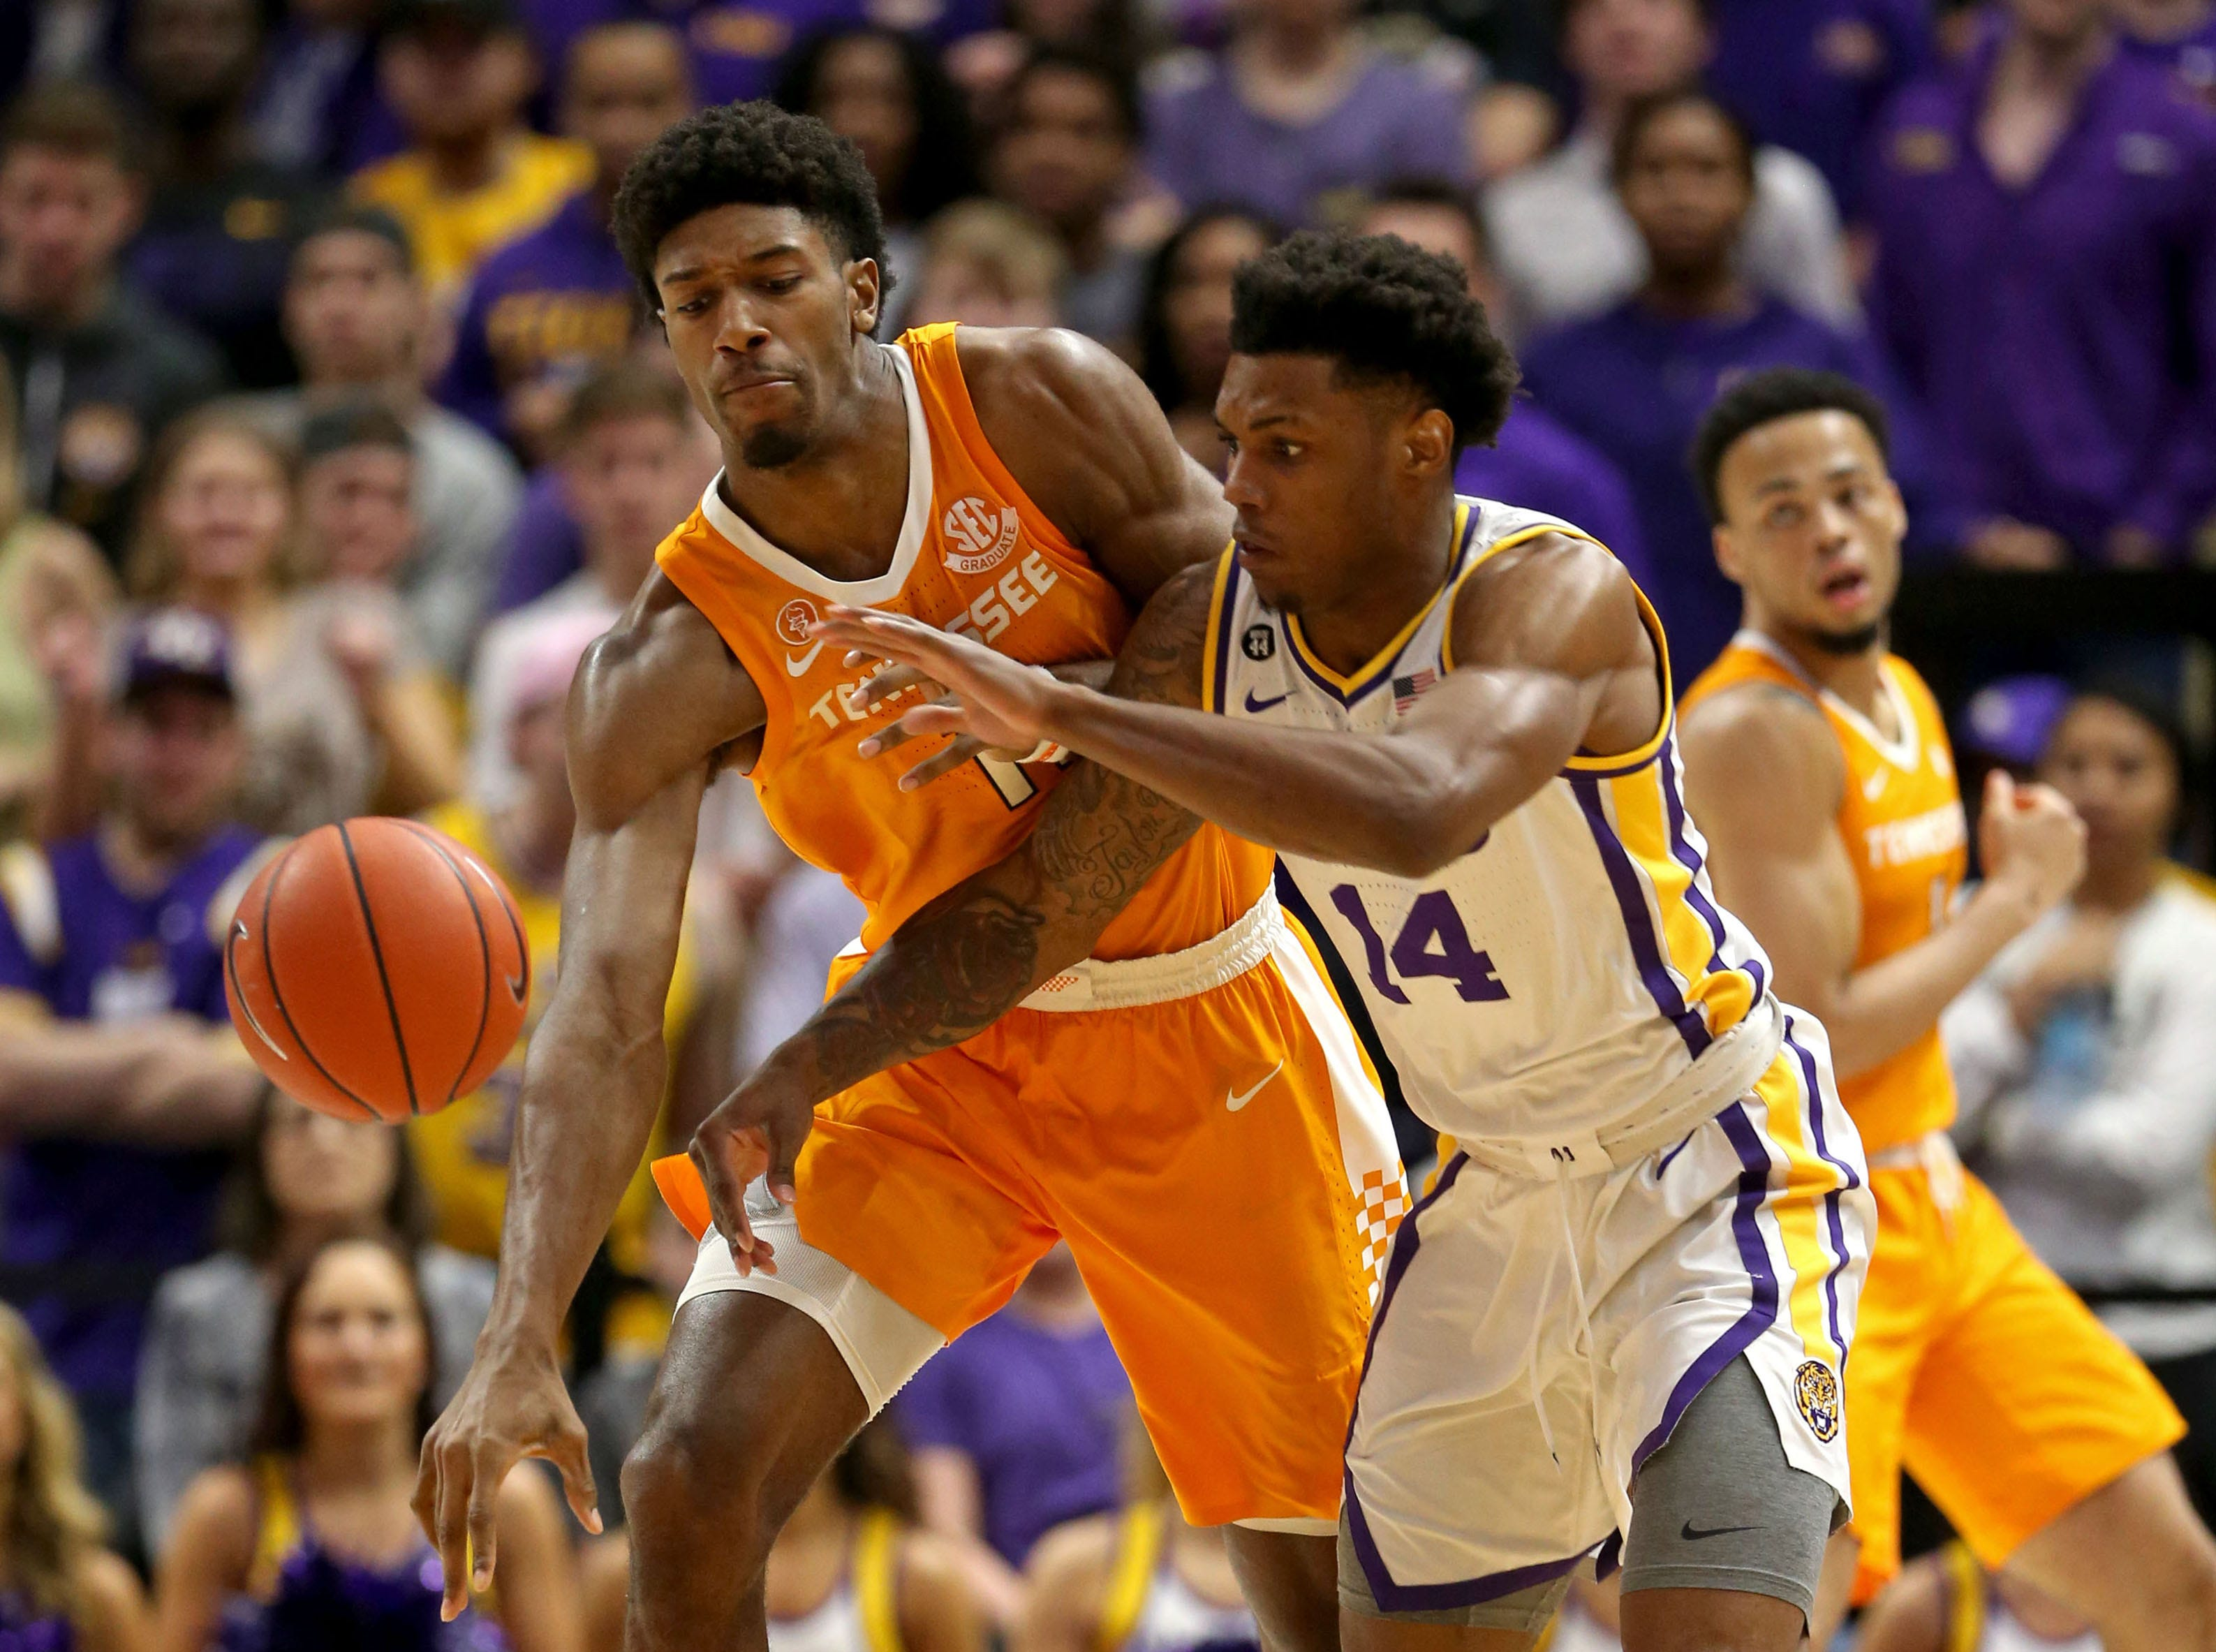 Feb 23, 2019; Baton Rouge, LA, USA; Tennessee Volunteers forward Kyle Alexander (11) and LSU Tigers guard Marlon Taylor (14) fight for the ball in the first half at the Maravich Assembly Center. Mandatory Credit: Chuck Cook-USA TODAY Sports